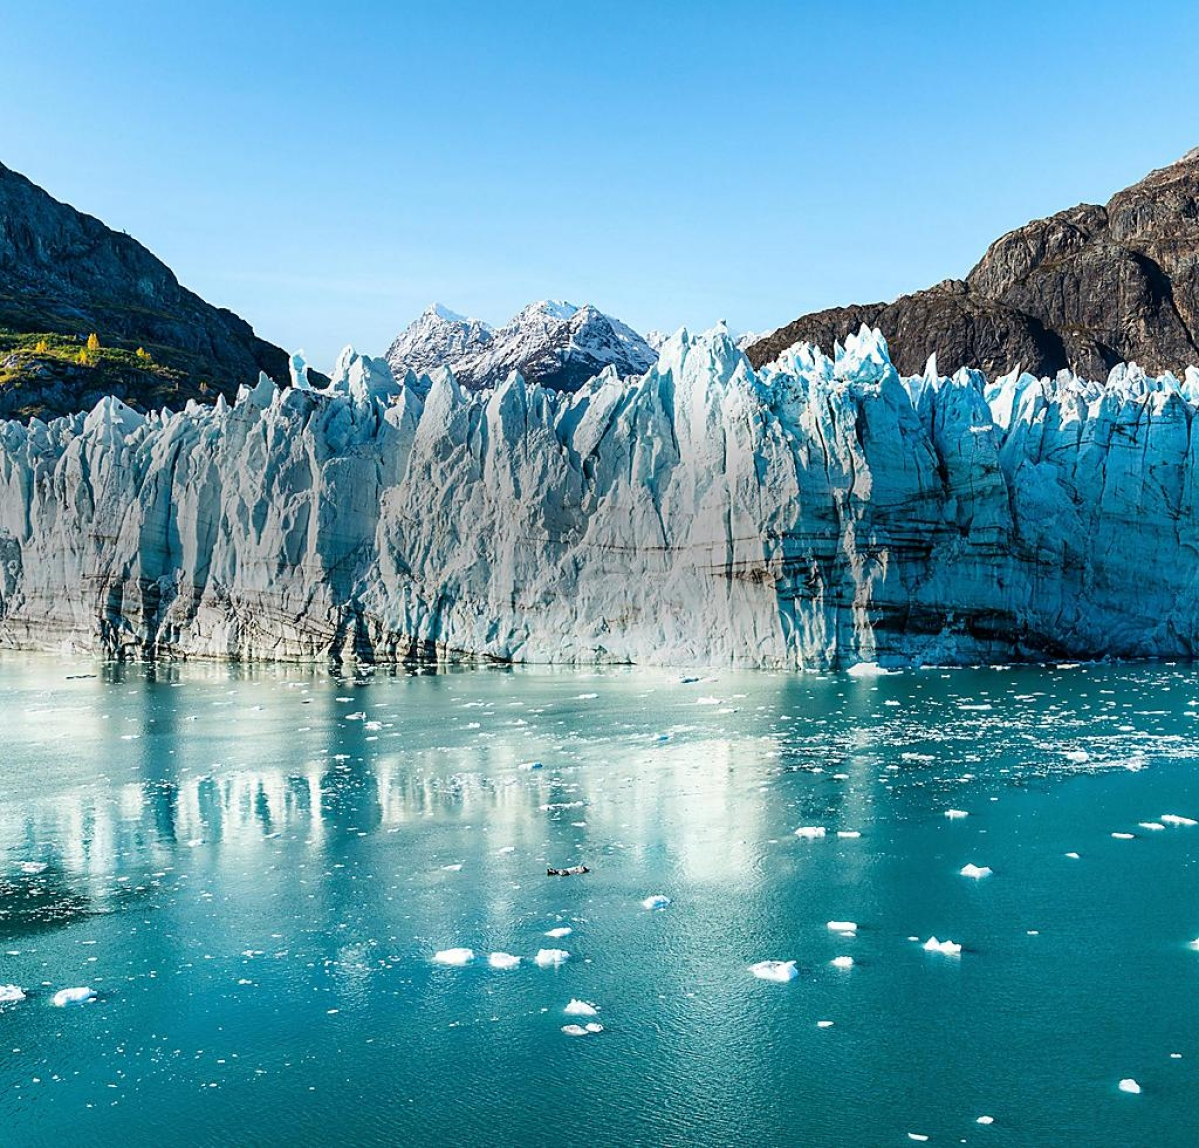 Alaskan glaciers are melting much faster than thought